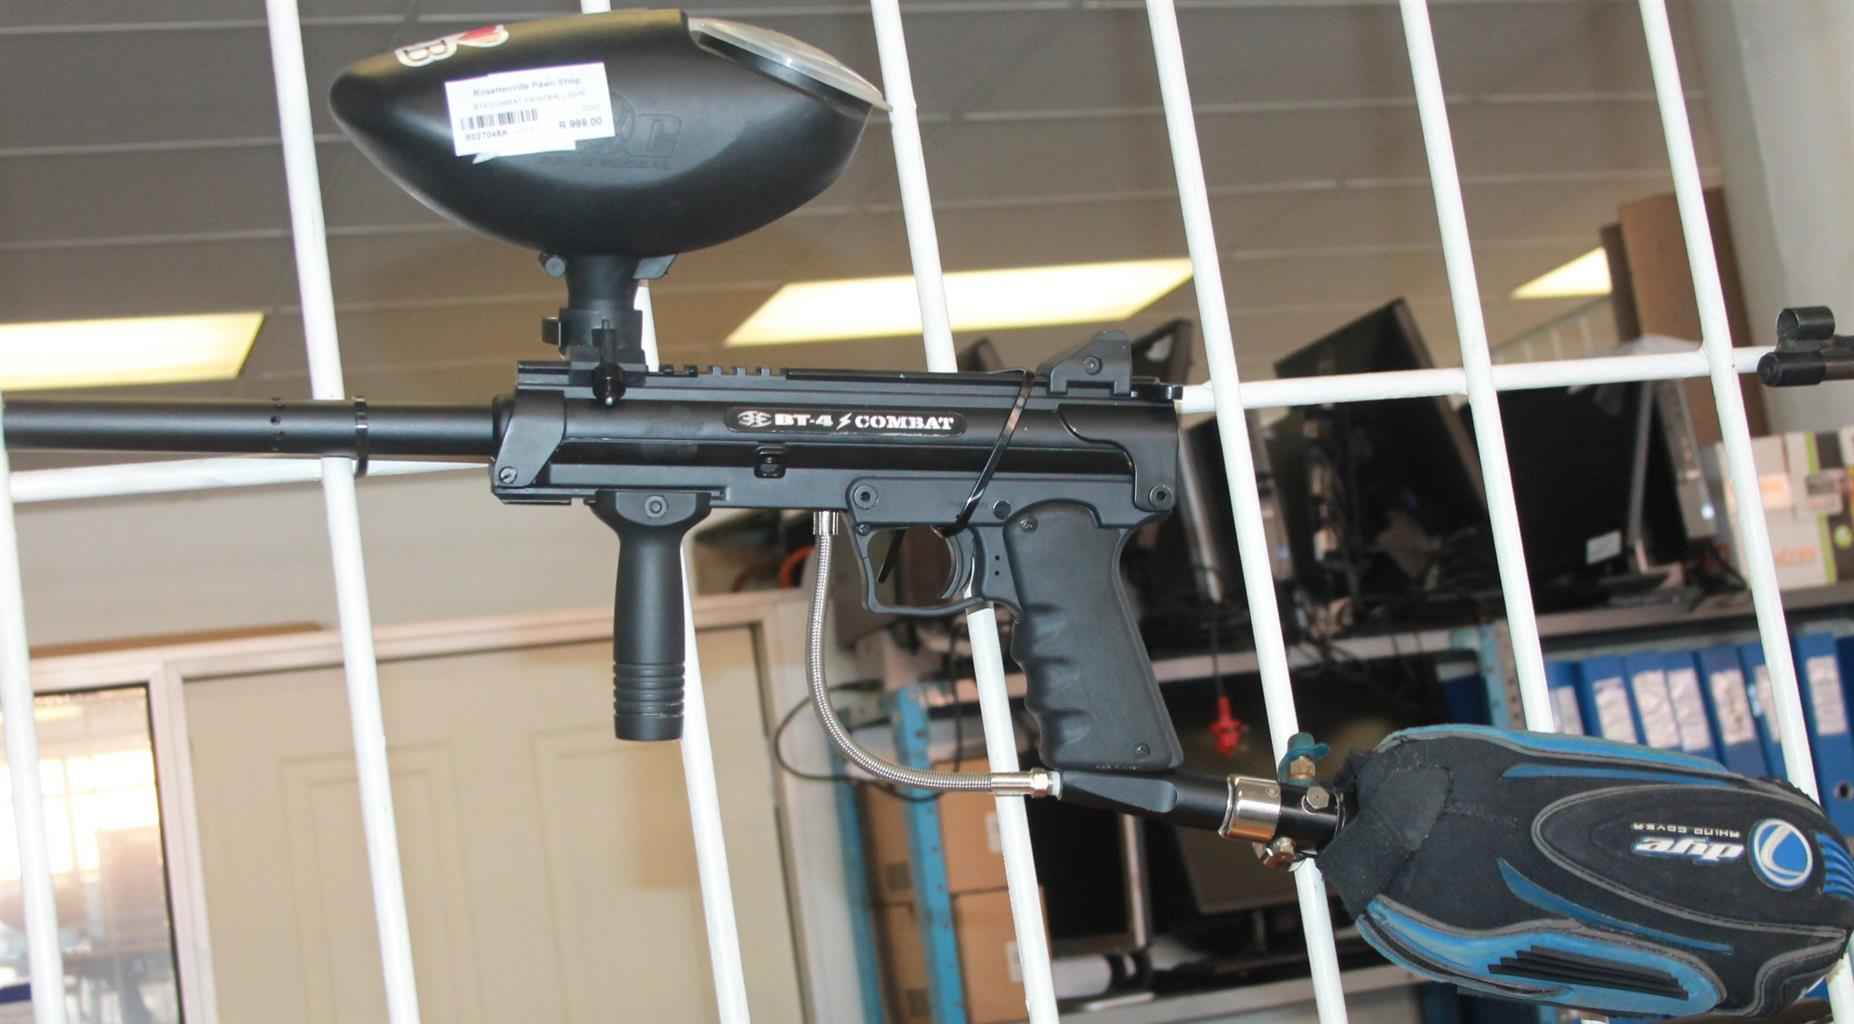 BT 4 paintball gun S027048a #Rosettenvillepawnshop